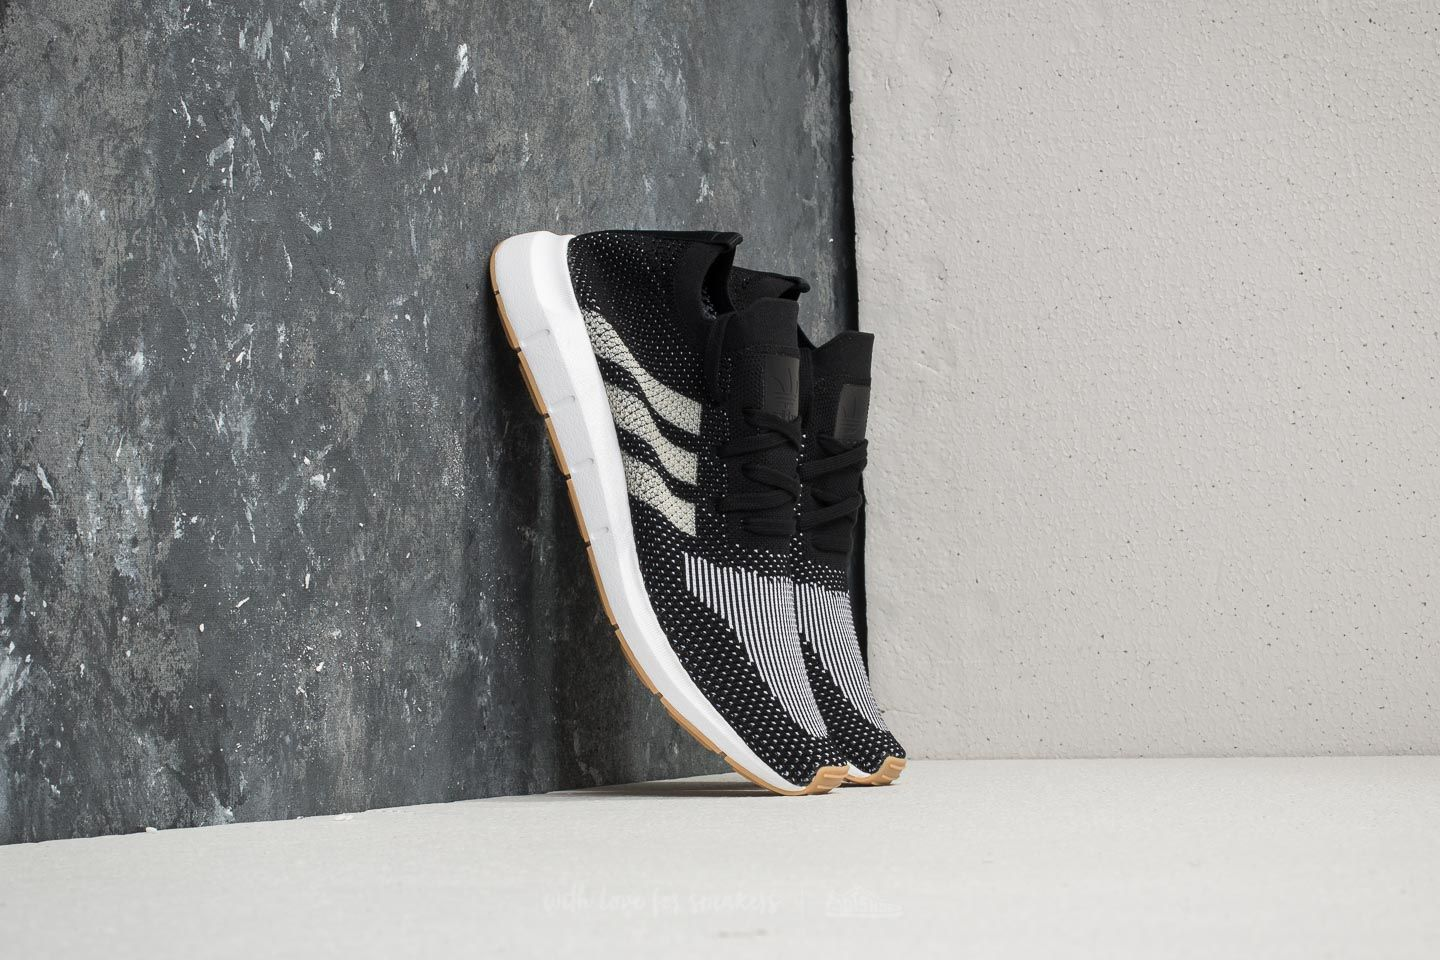 aba80fcb319f8 adidas Swift Run Primeknit Core Black  Off White  Ftw White